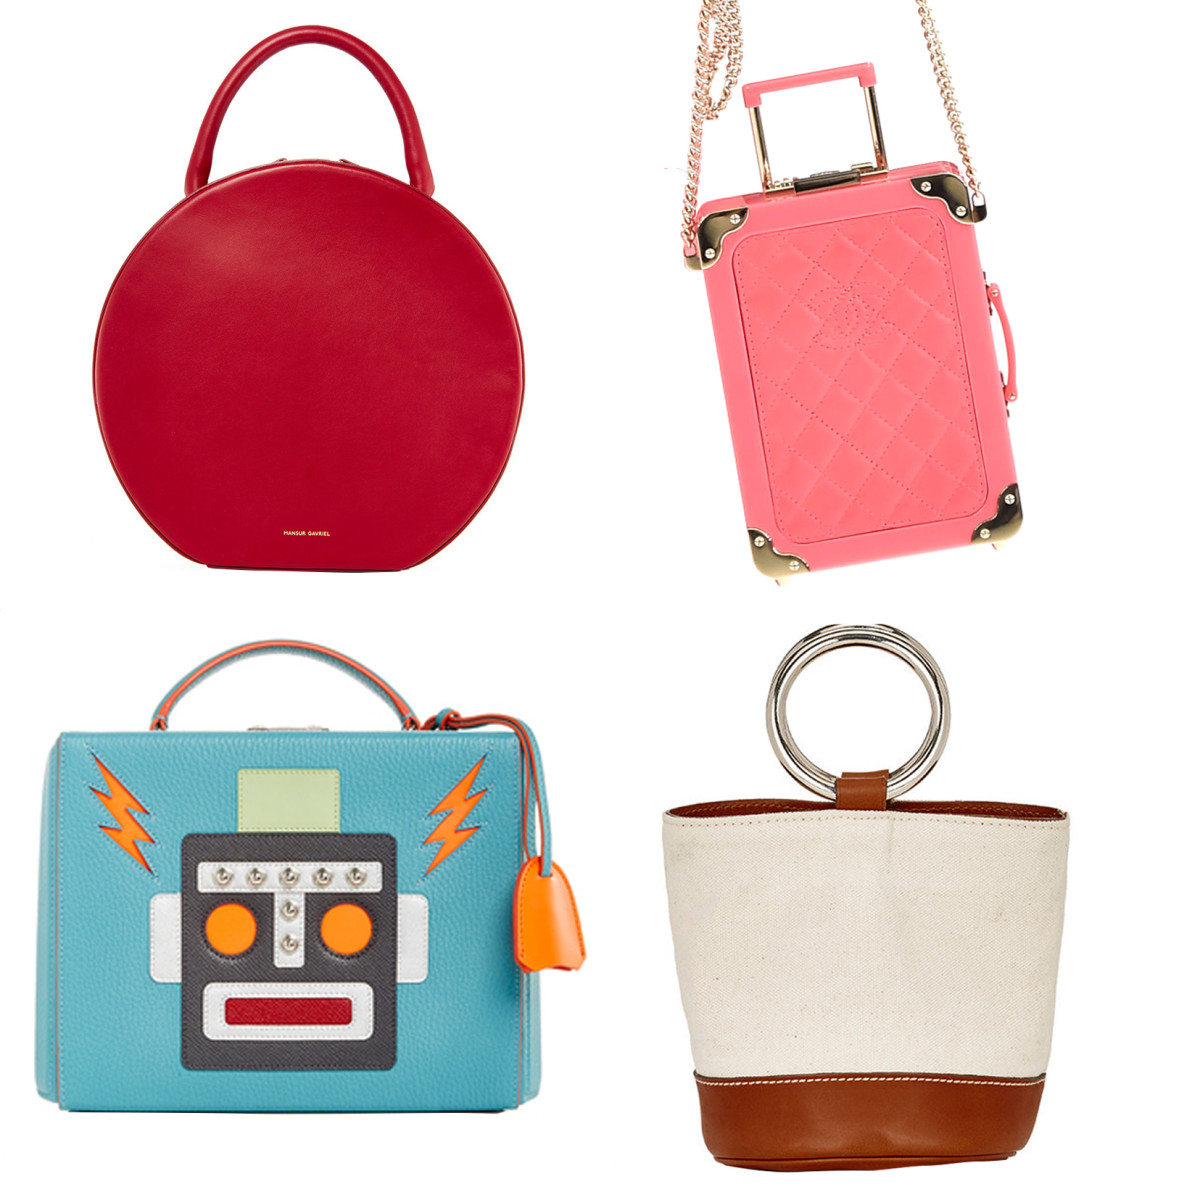 Clockwise from top left: Mansur Gavriel rococo leather circle bag, $1,095, available at Moda Operandi; Chanel spring 2016 bag. Photo: Imaxtree; Mark Cross large robot grace box, $2,695, available at Moda Operandi; Simon Miller bonsai bucket bag, $340, available at Barneys.